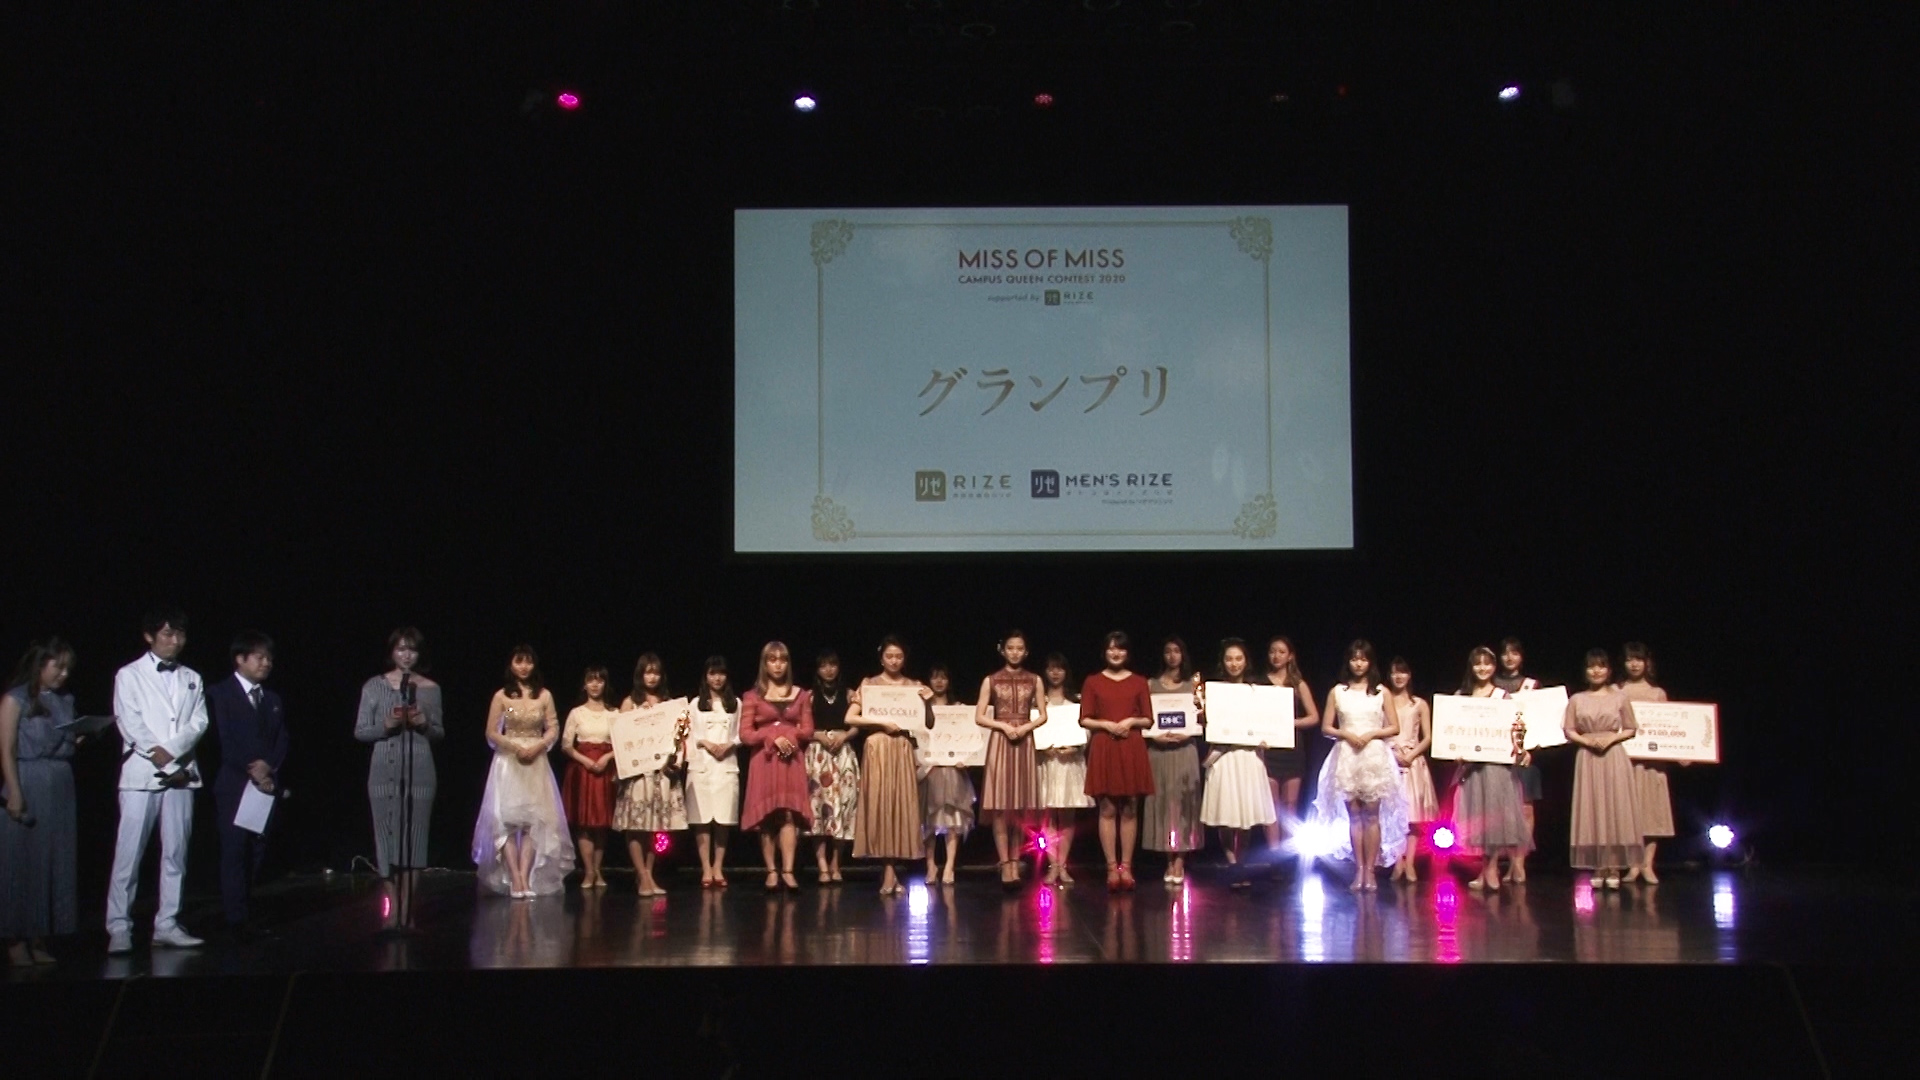 『MISS OF MISS CAMPUS QUEEN CONTEST 2020 supported by リゼクリニック(ミスオブミスキャンパスクイーンコンテスト)』表彰式